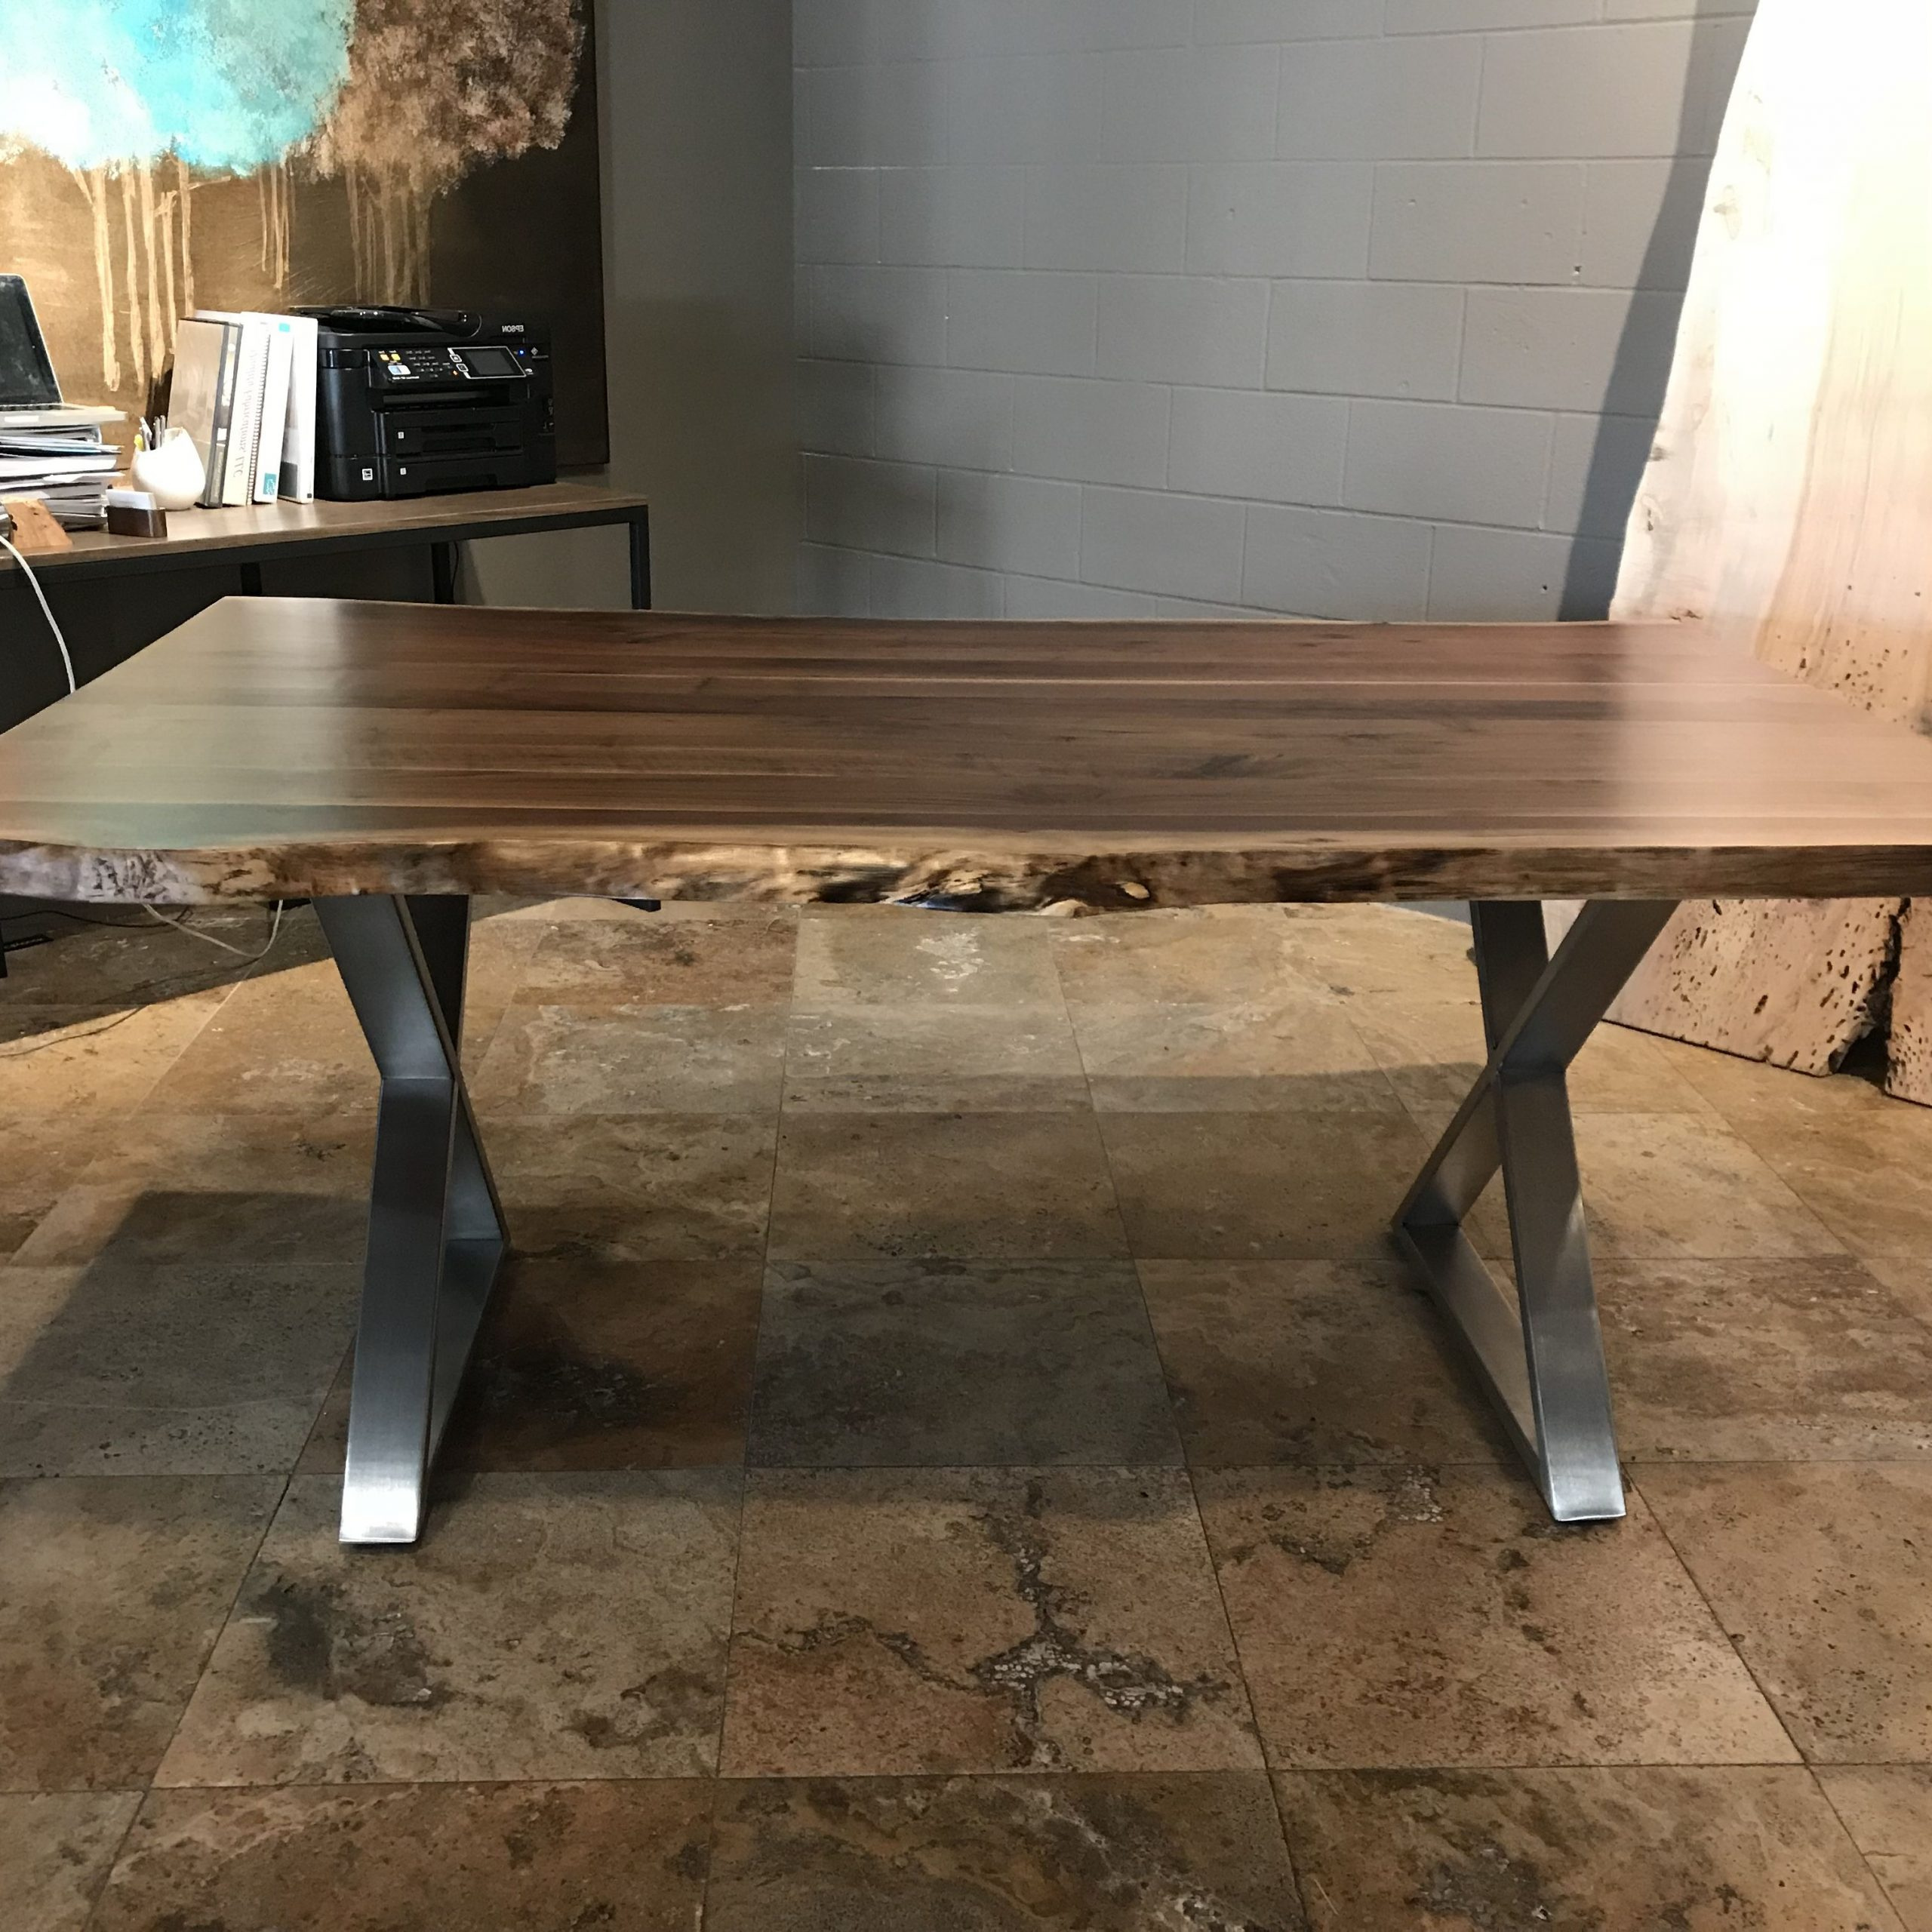 Buy A Custom Live Edge Dining Table, Made To Order From With Regard To Popular Walnut Finish Live Edge Wood Contemporary Dining Tables (View 10 of 25)